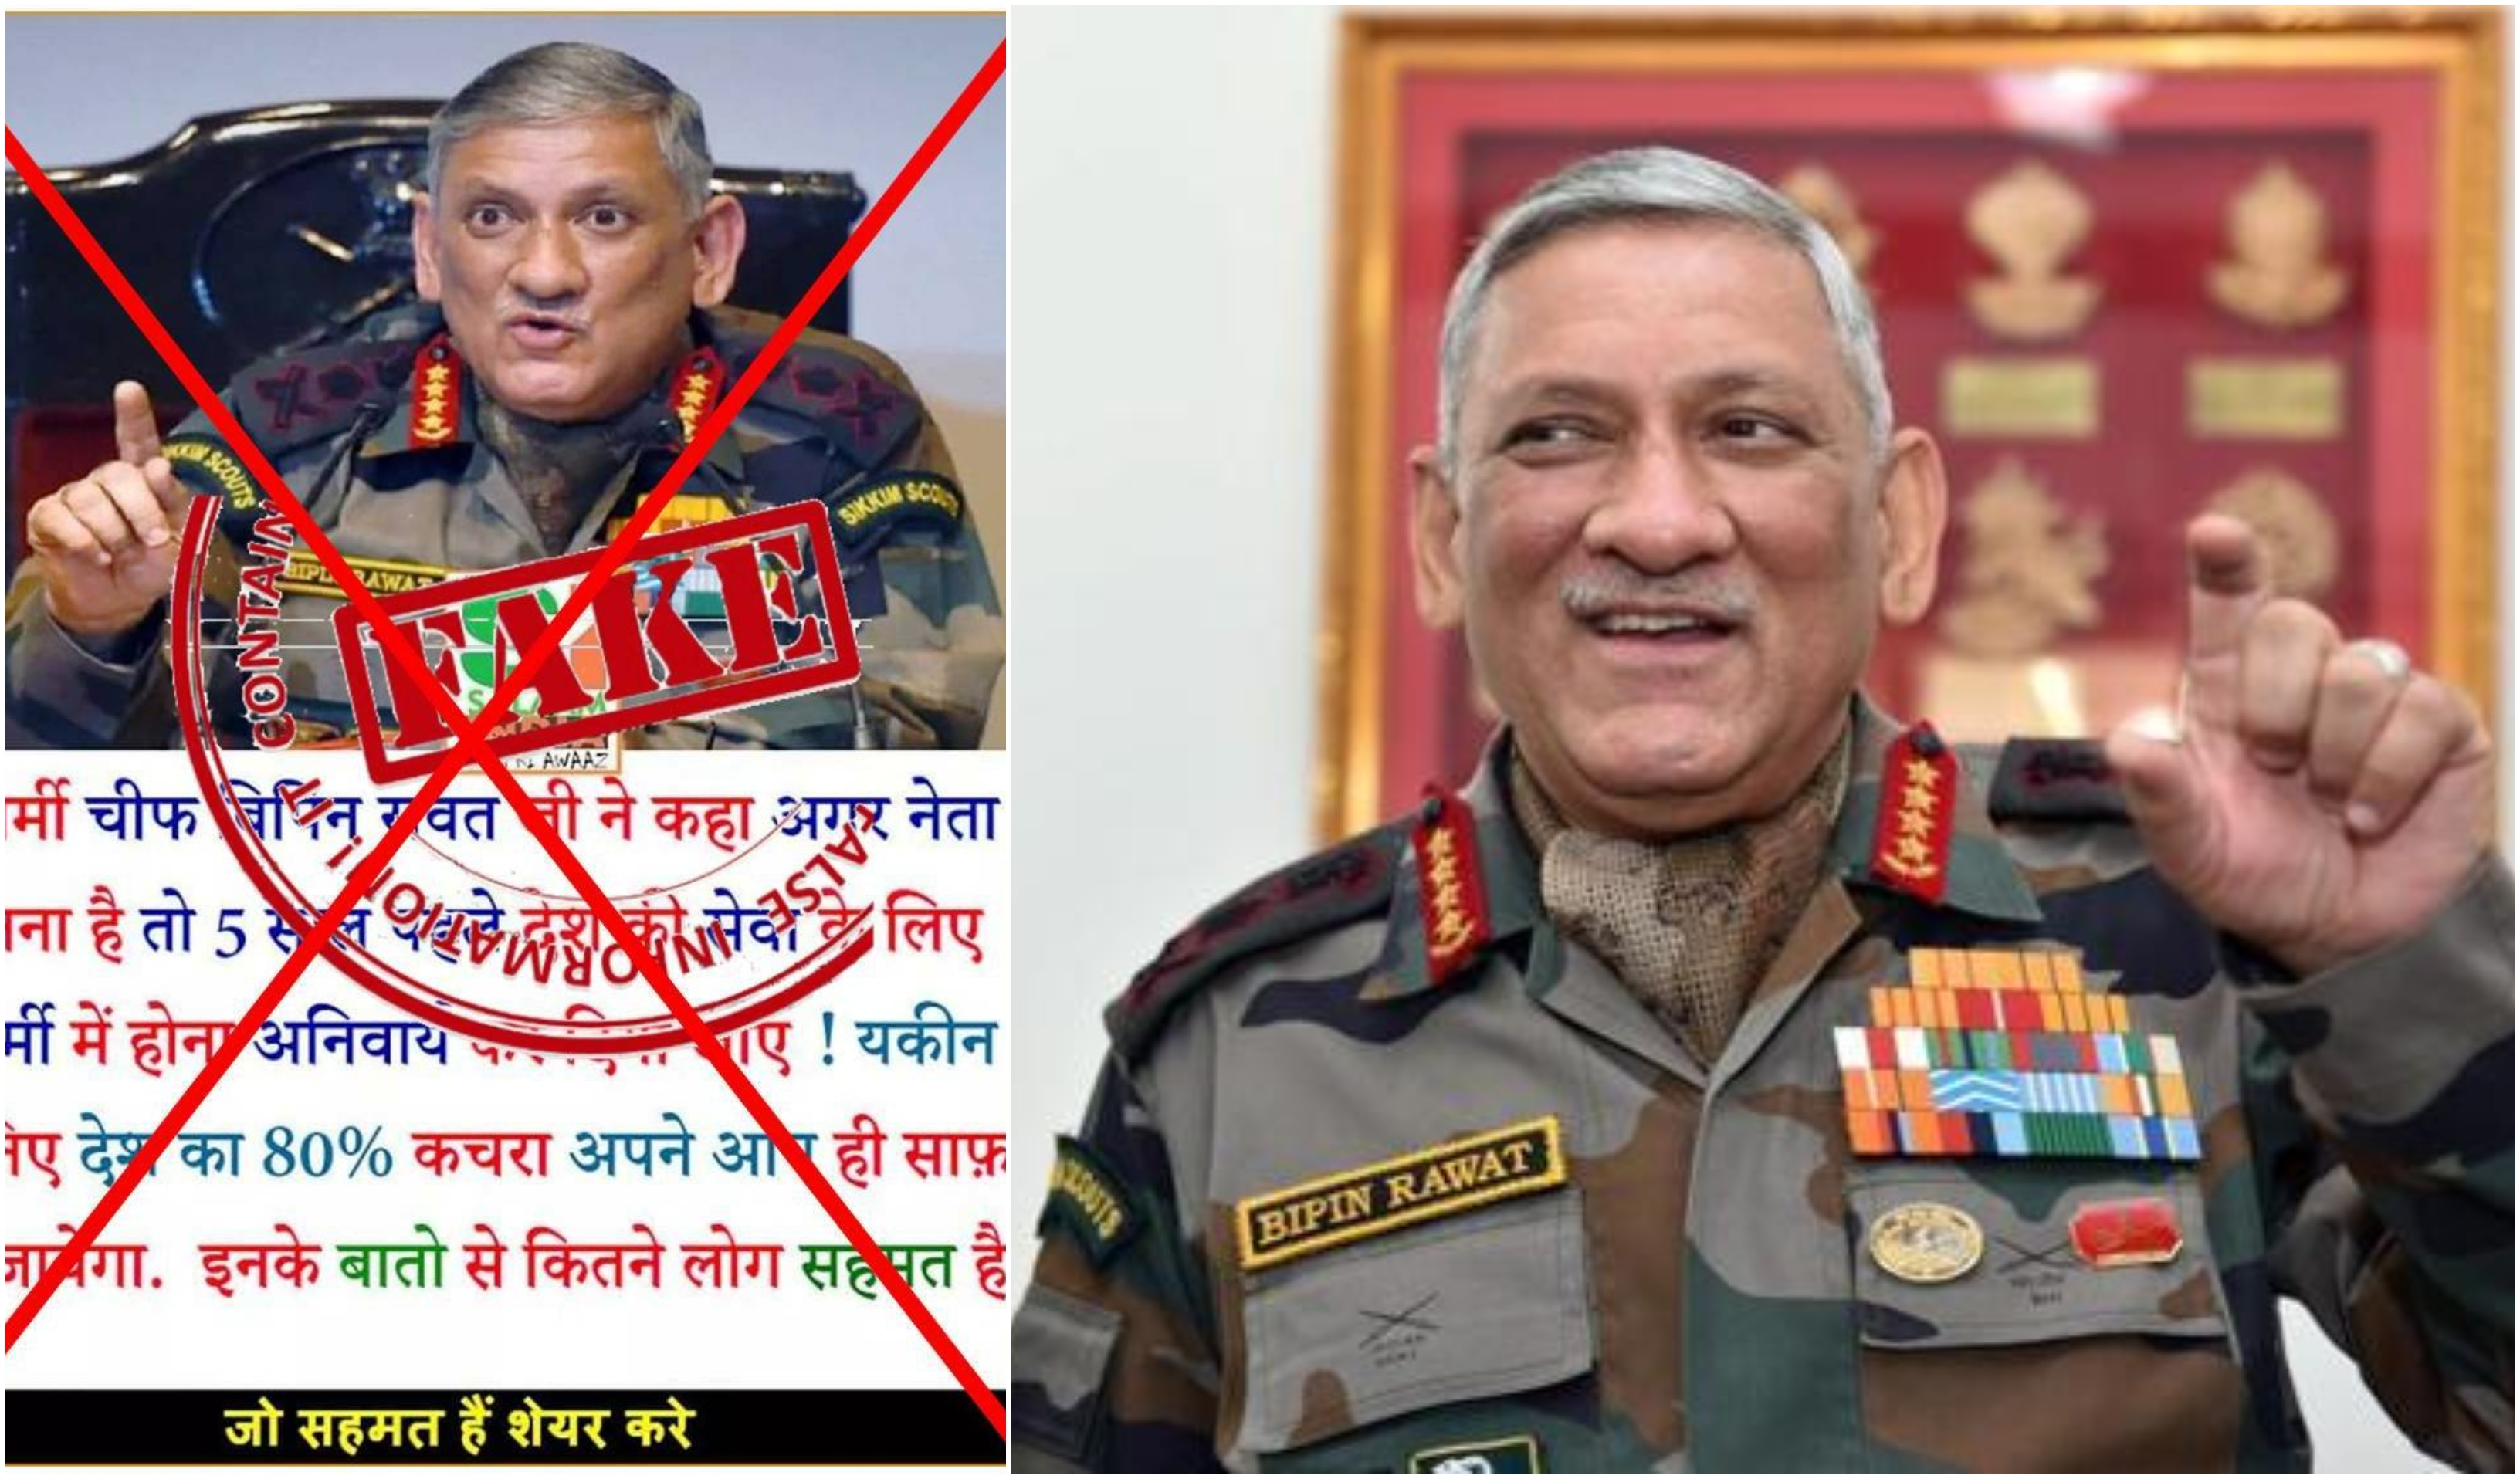 Fake News, Fake, Post, Facebook, Army Chief, General, Bipin Rawat, Indian Army, NewsMobile, Mobile News, Fact Check, Fact Checker, India